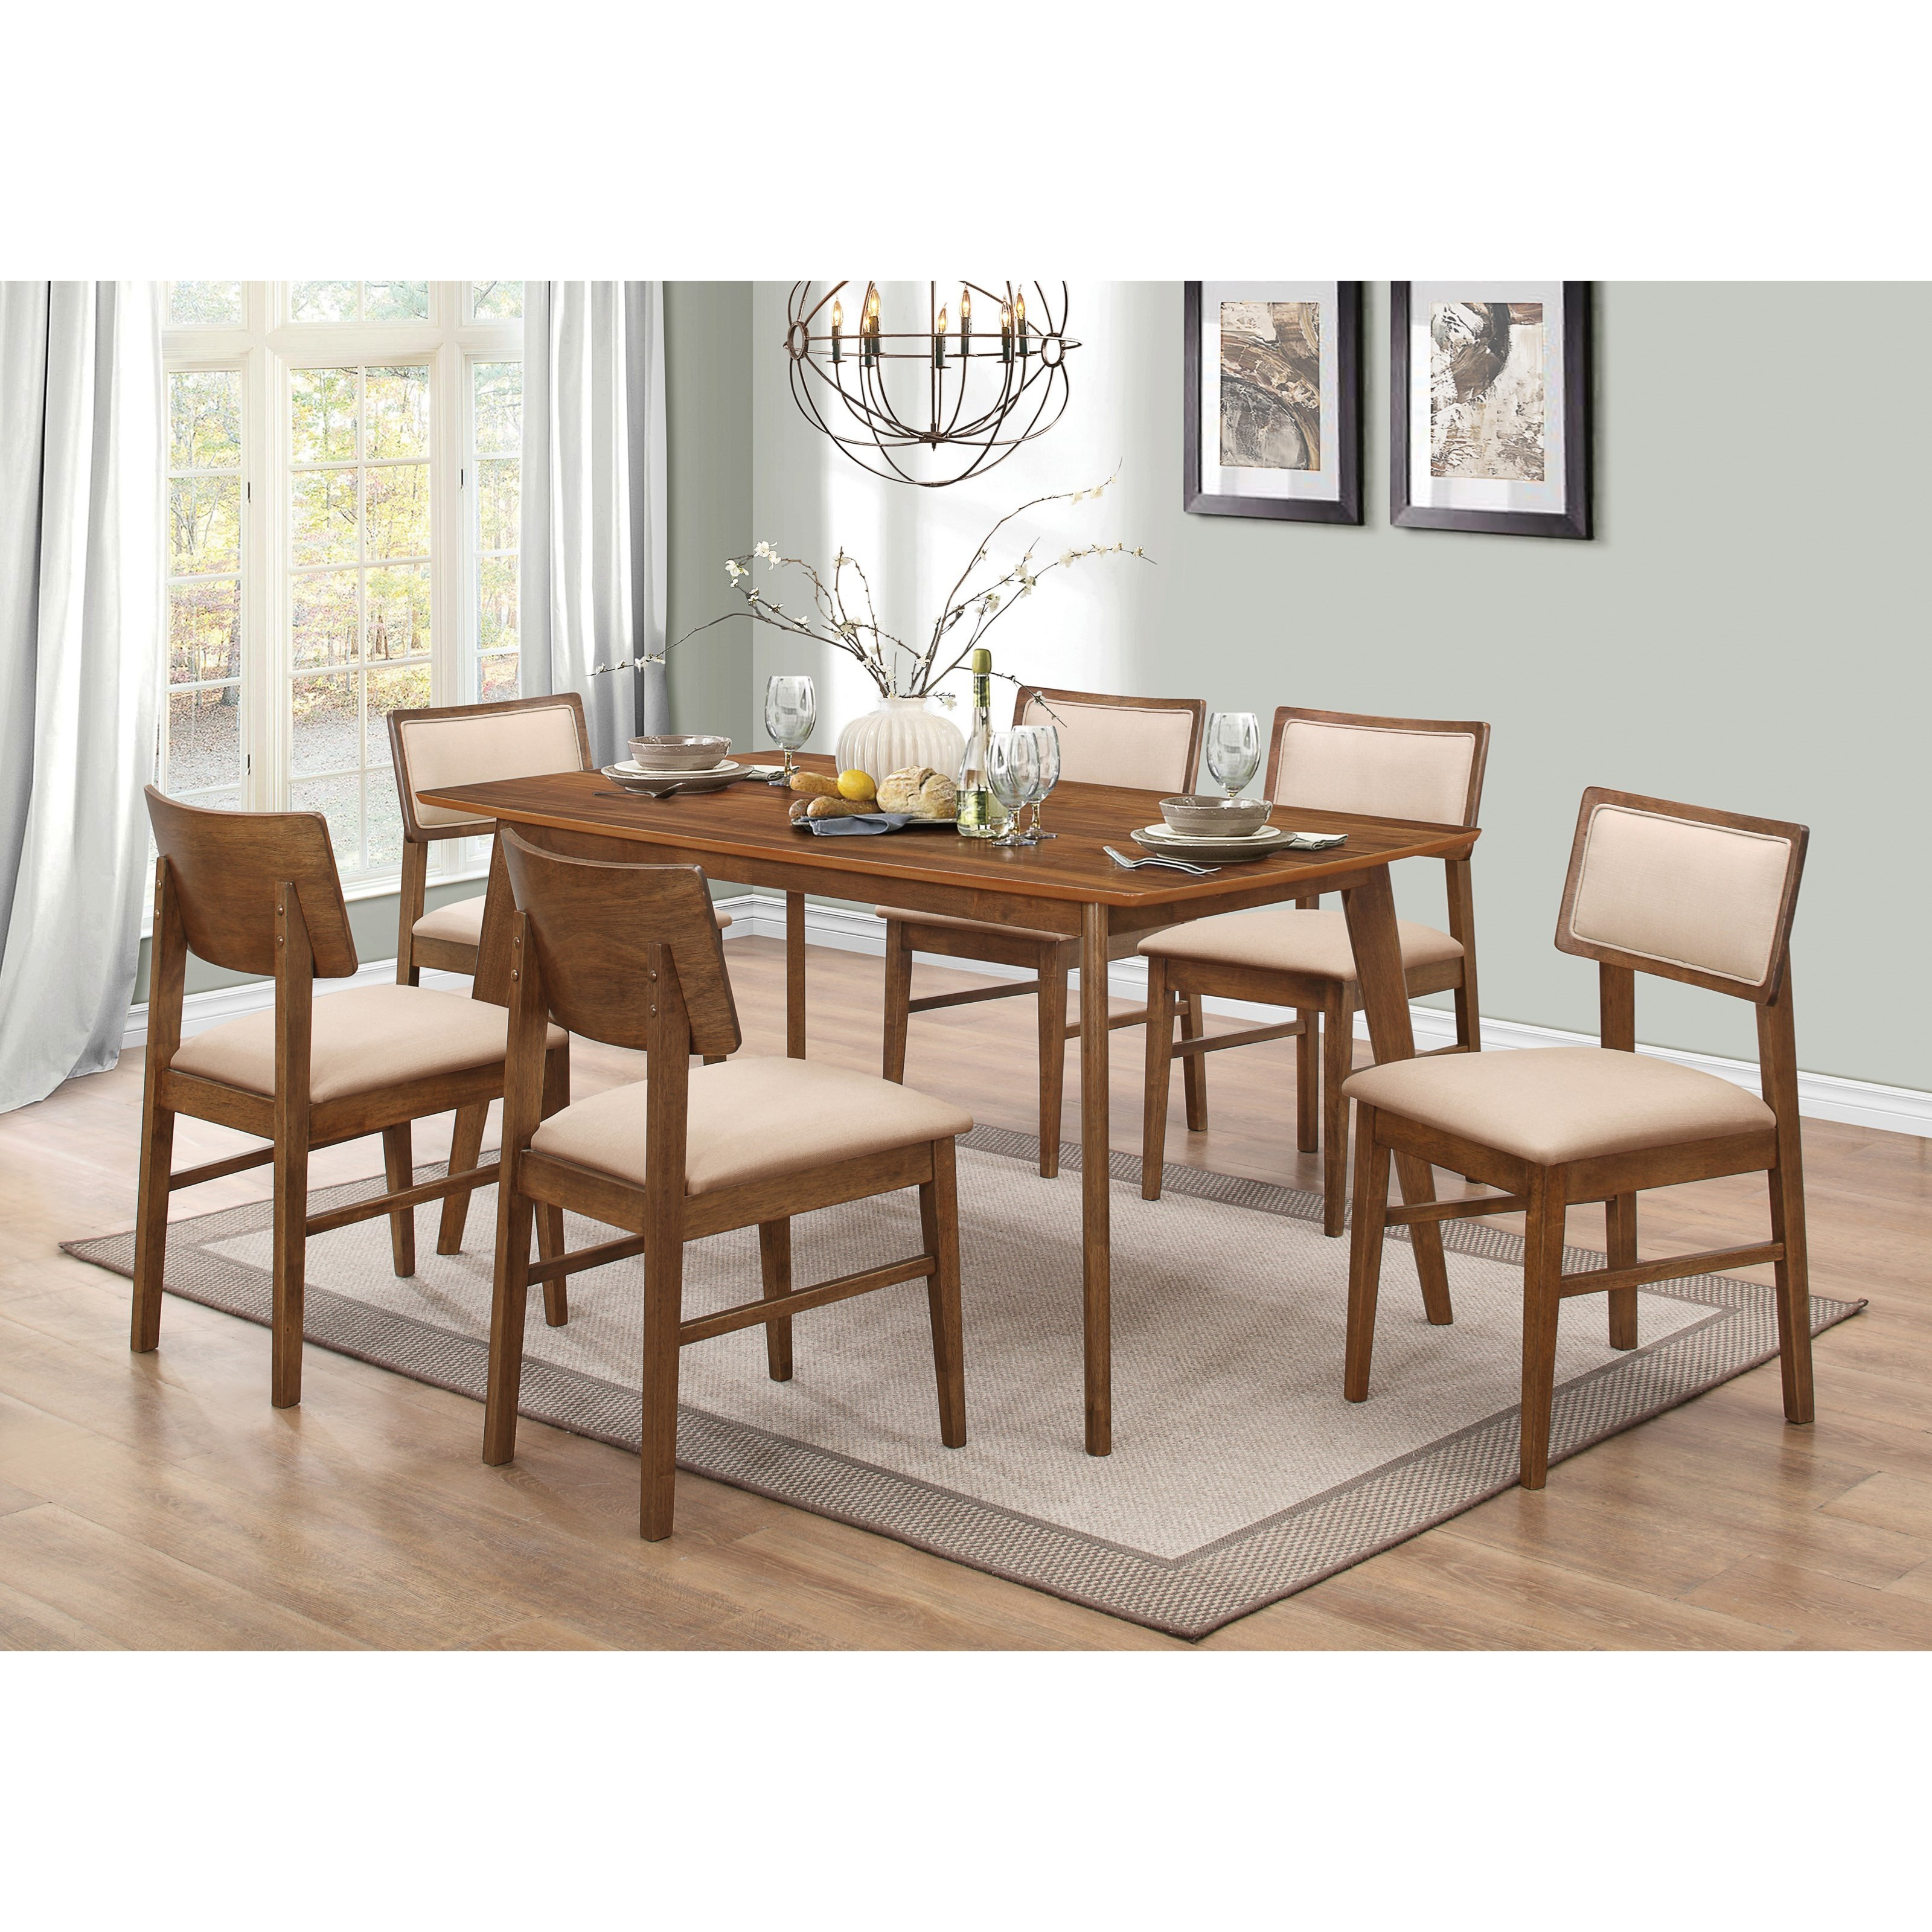 Coaster sasha retro table and chair set value city for Casual dining room sets